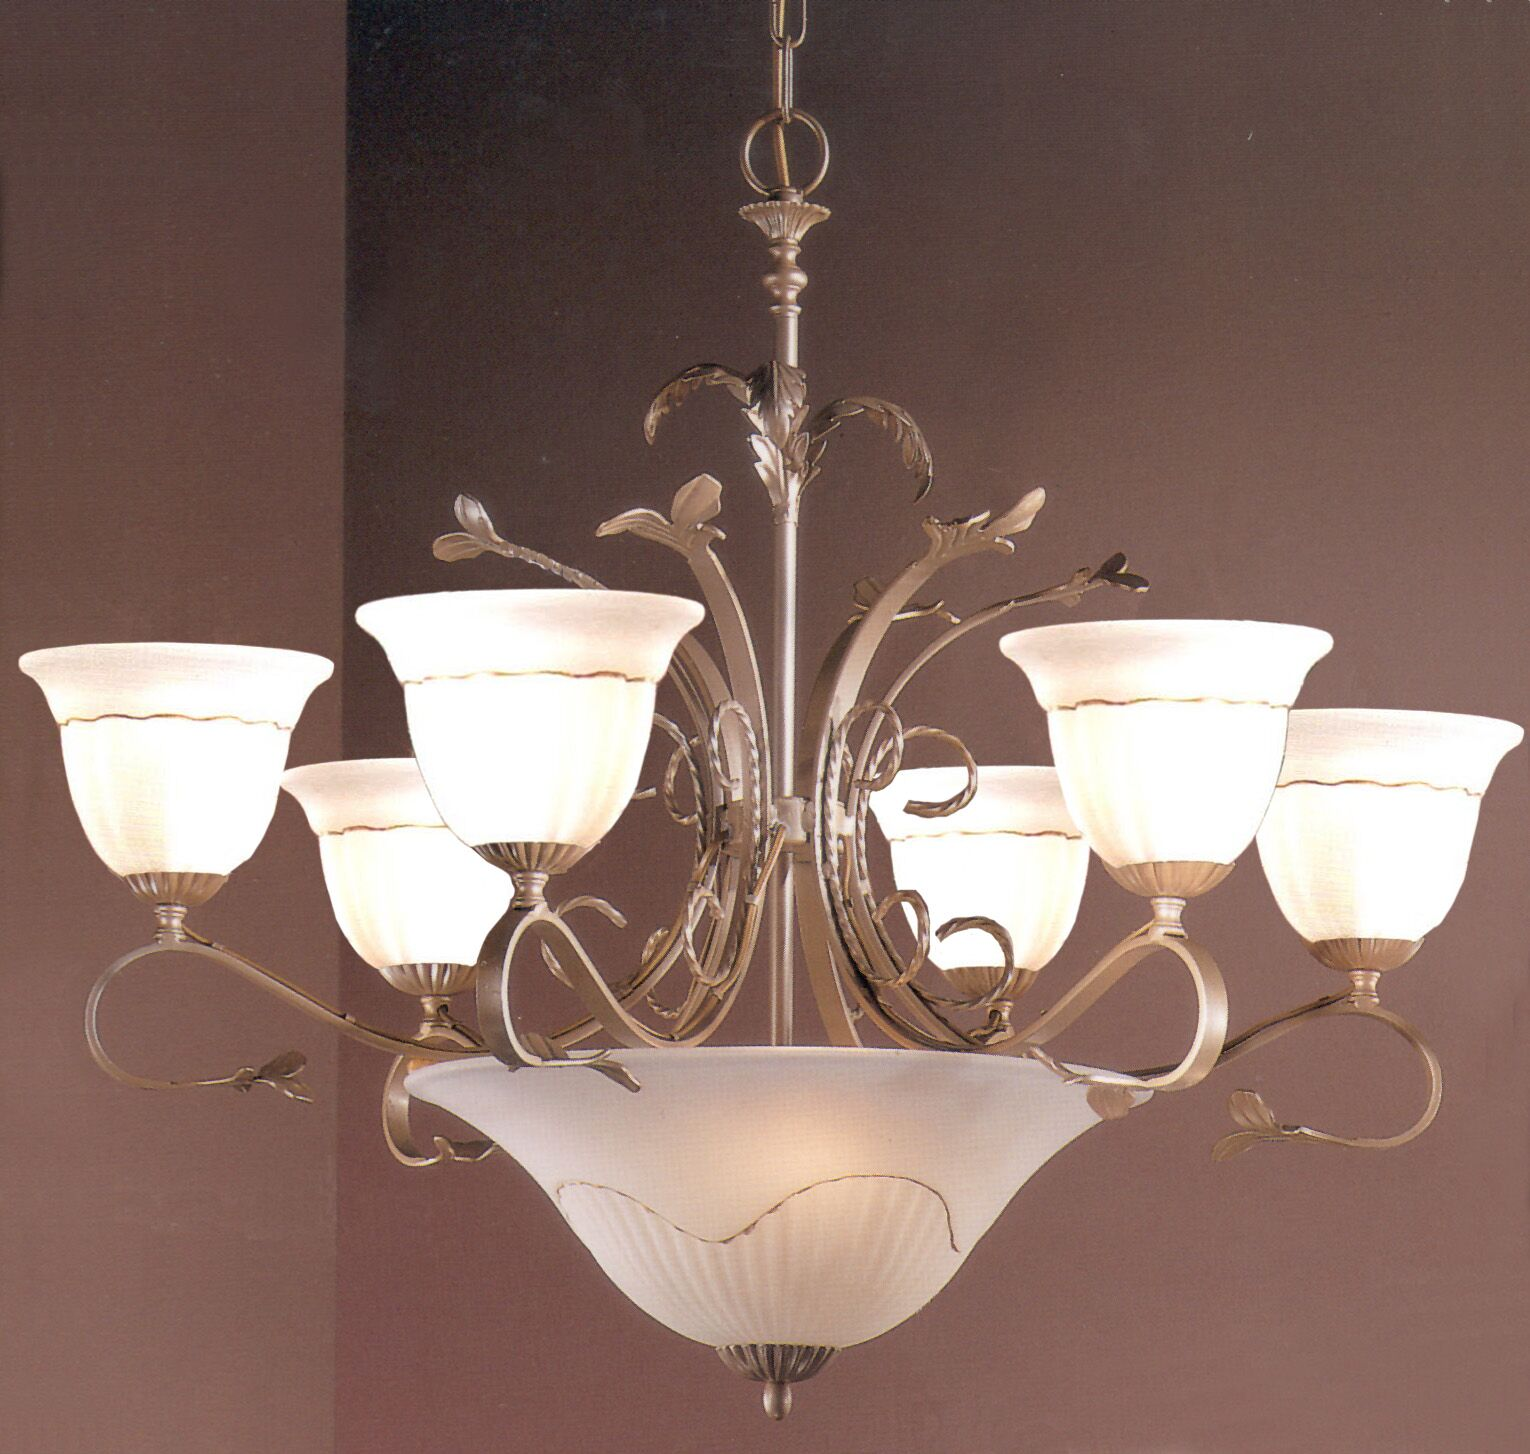 Treviso 9-Light Shaded Chandelier Finish: Pearlized Gold